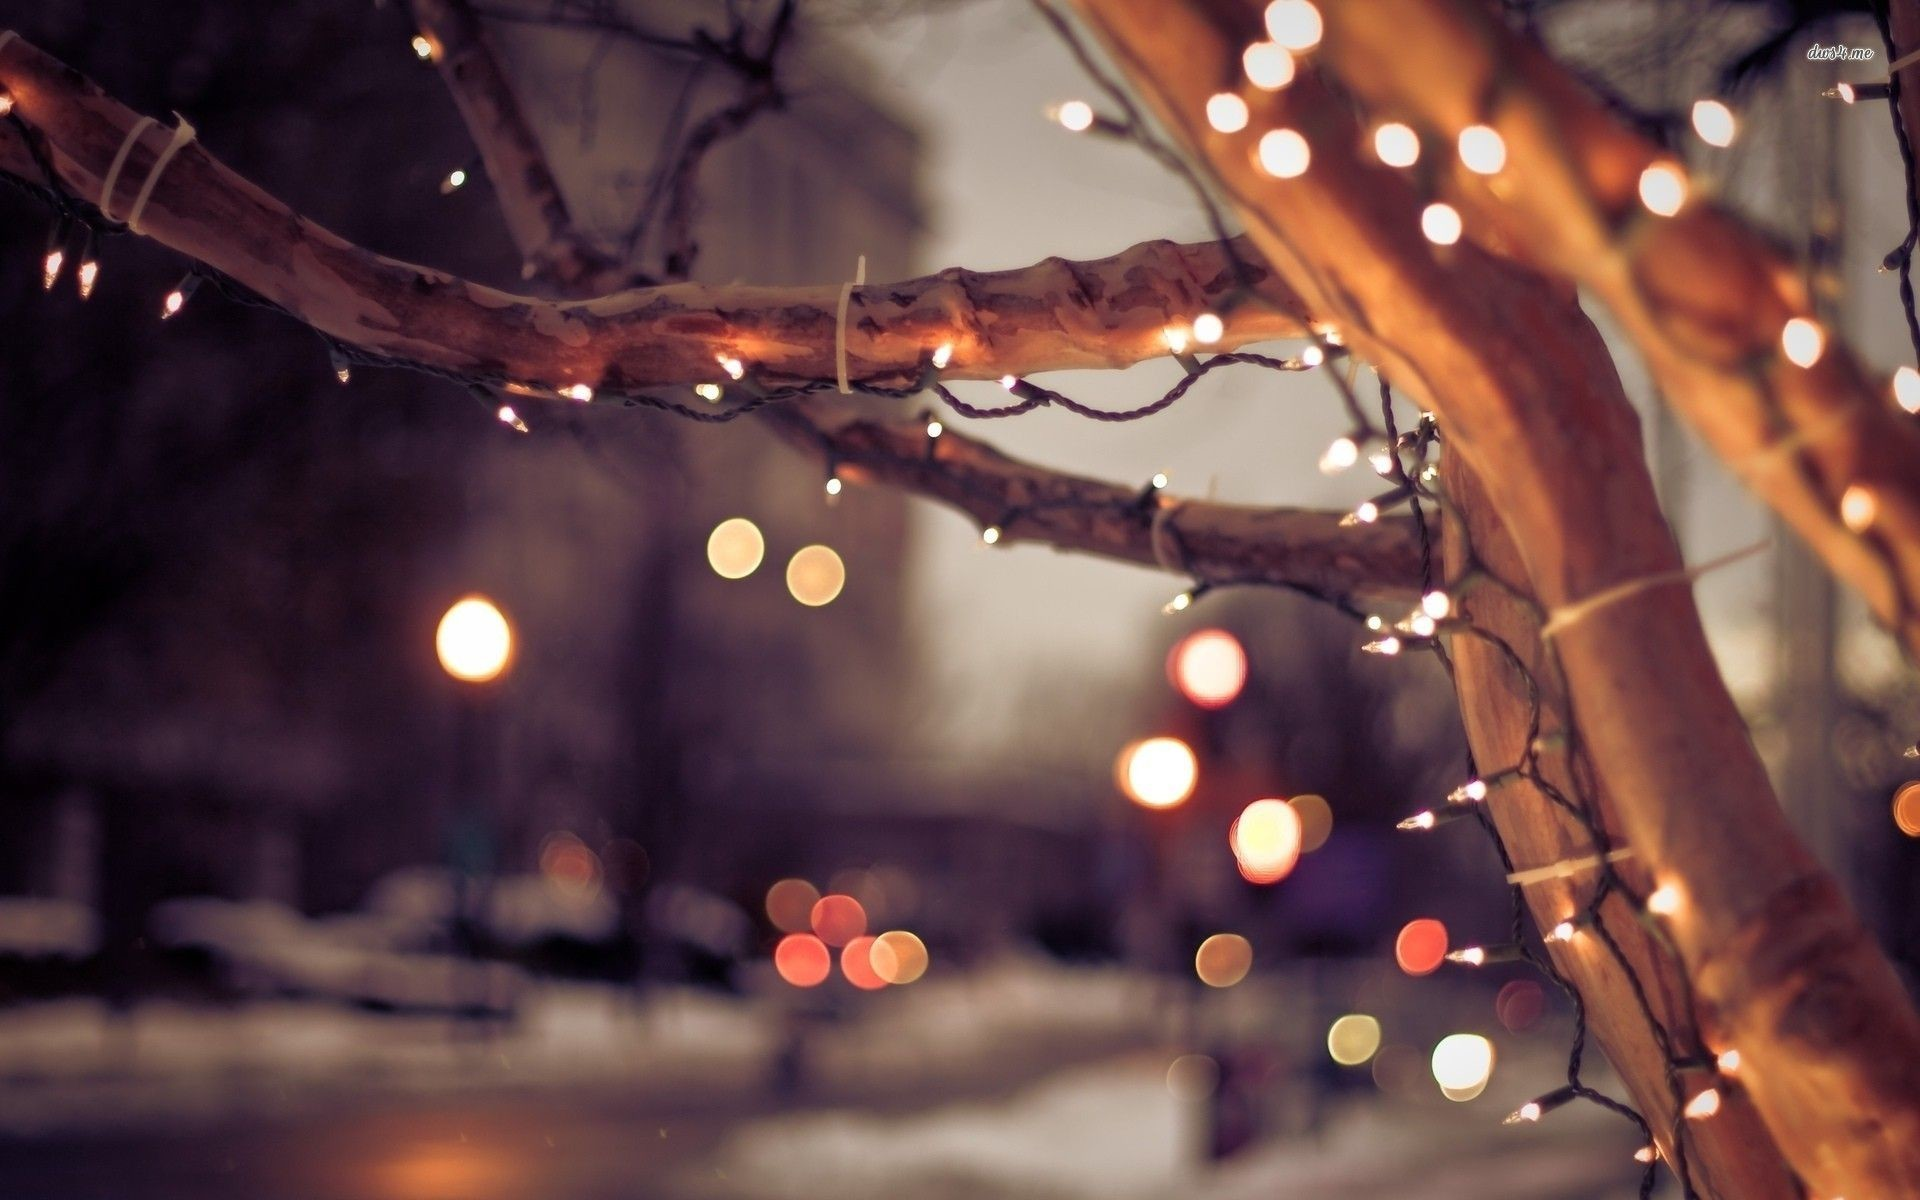 Christmas Backgrounds Tumblr.Christmas Wallpapers Tumblr 75 Background Pictures